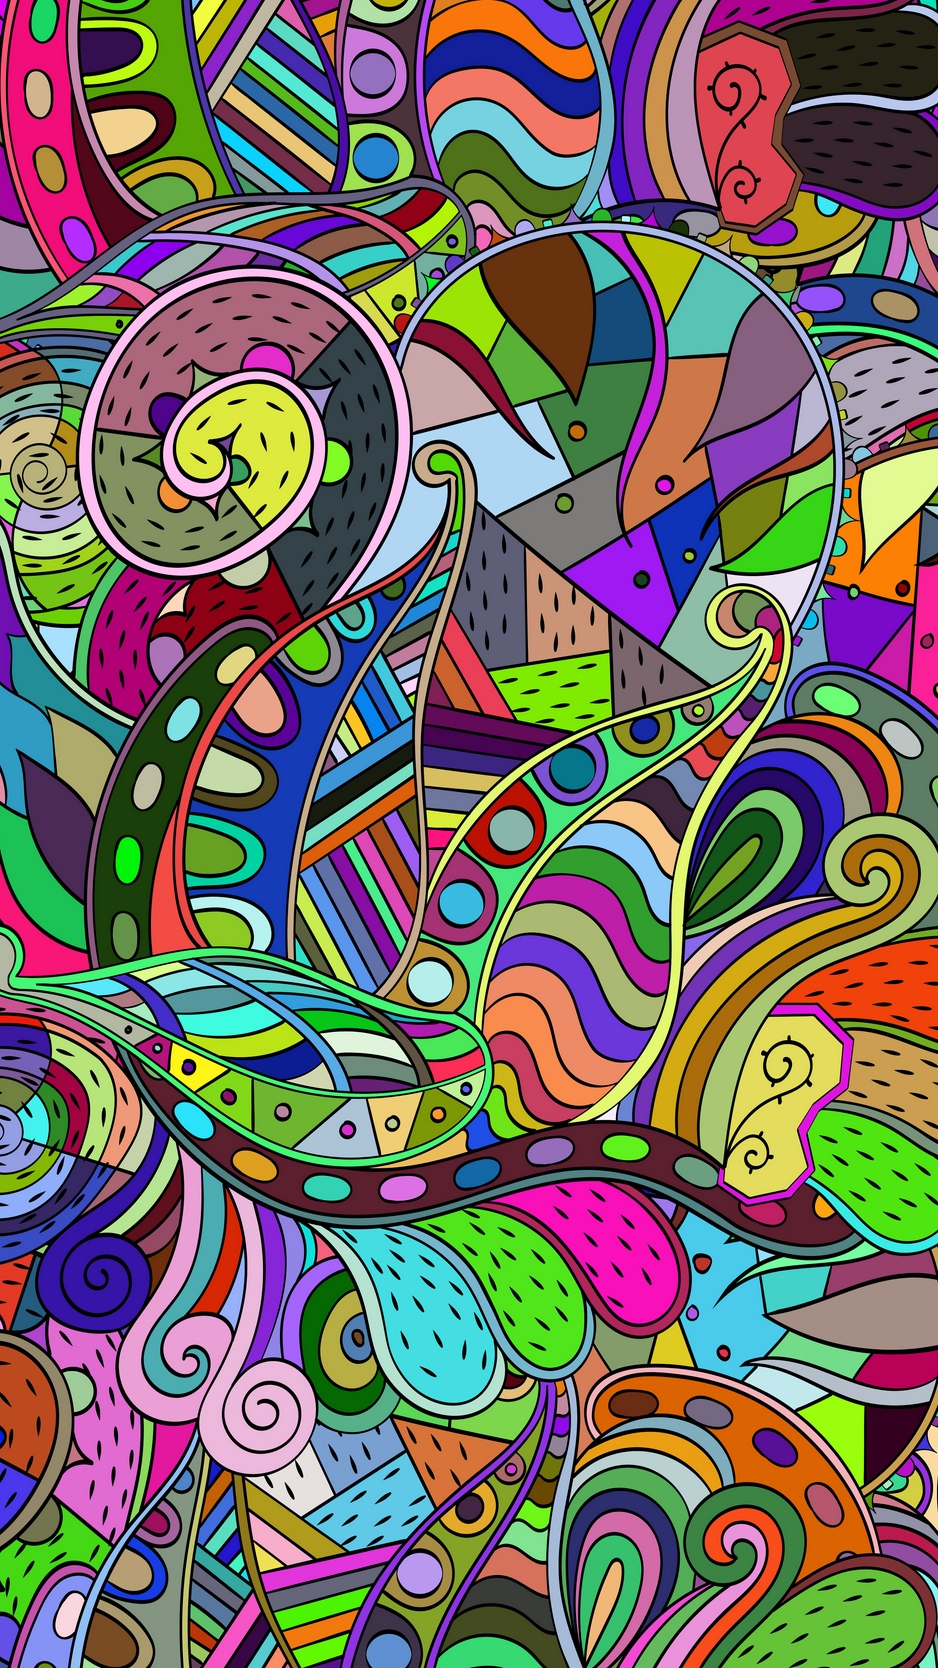 Wallpaper Doodles, Patterns, Colorful - Colorful Wallpaper Iphone 8 - HD Wallpaper